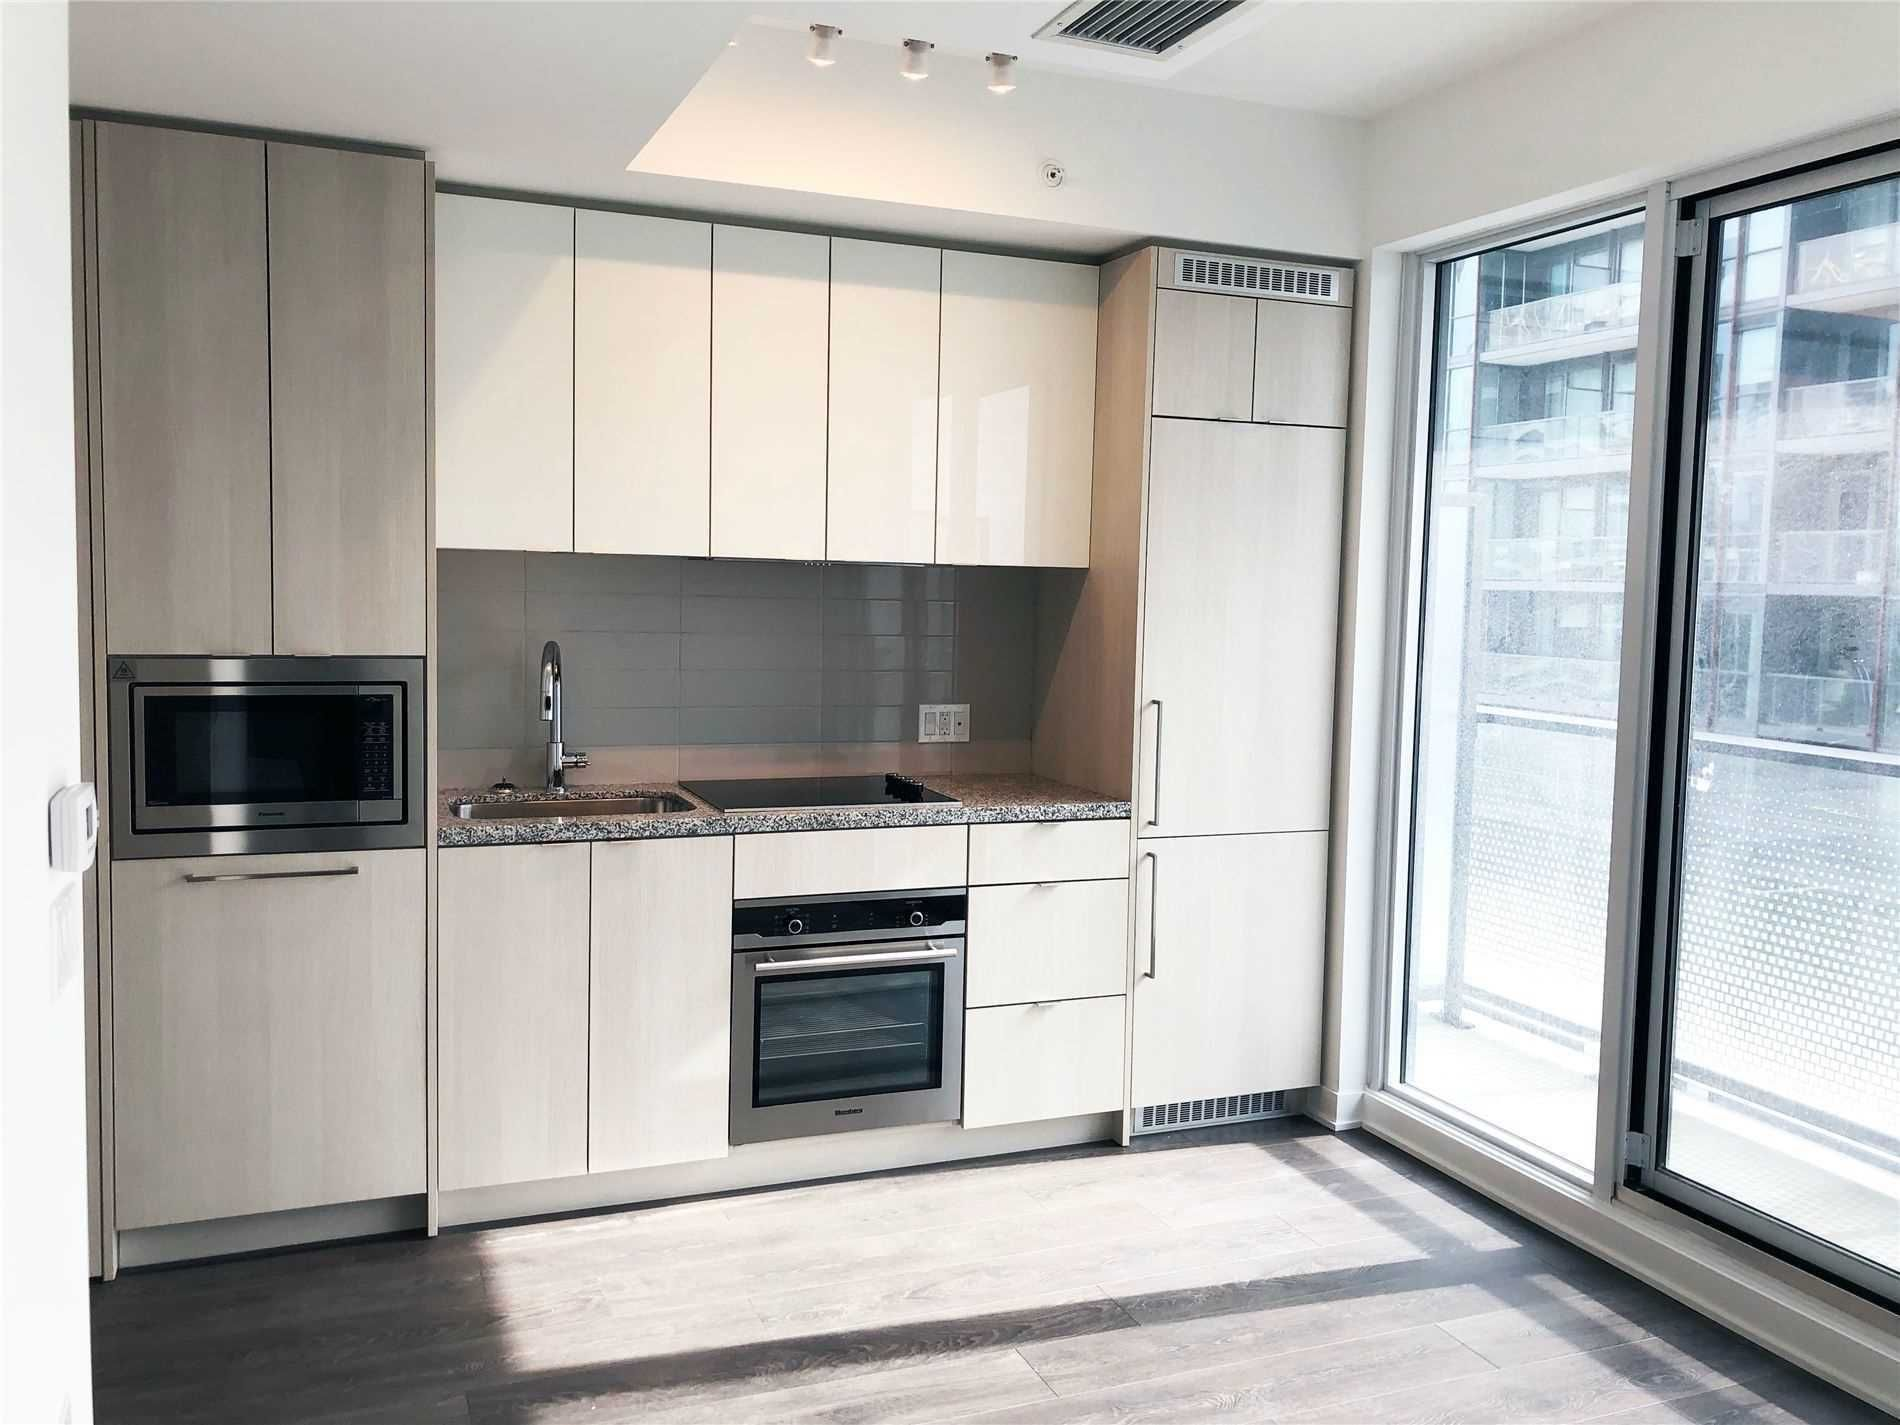 115 Blue Jays Way, unit 3707 for rent in Toronto - image #2